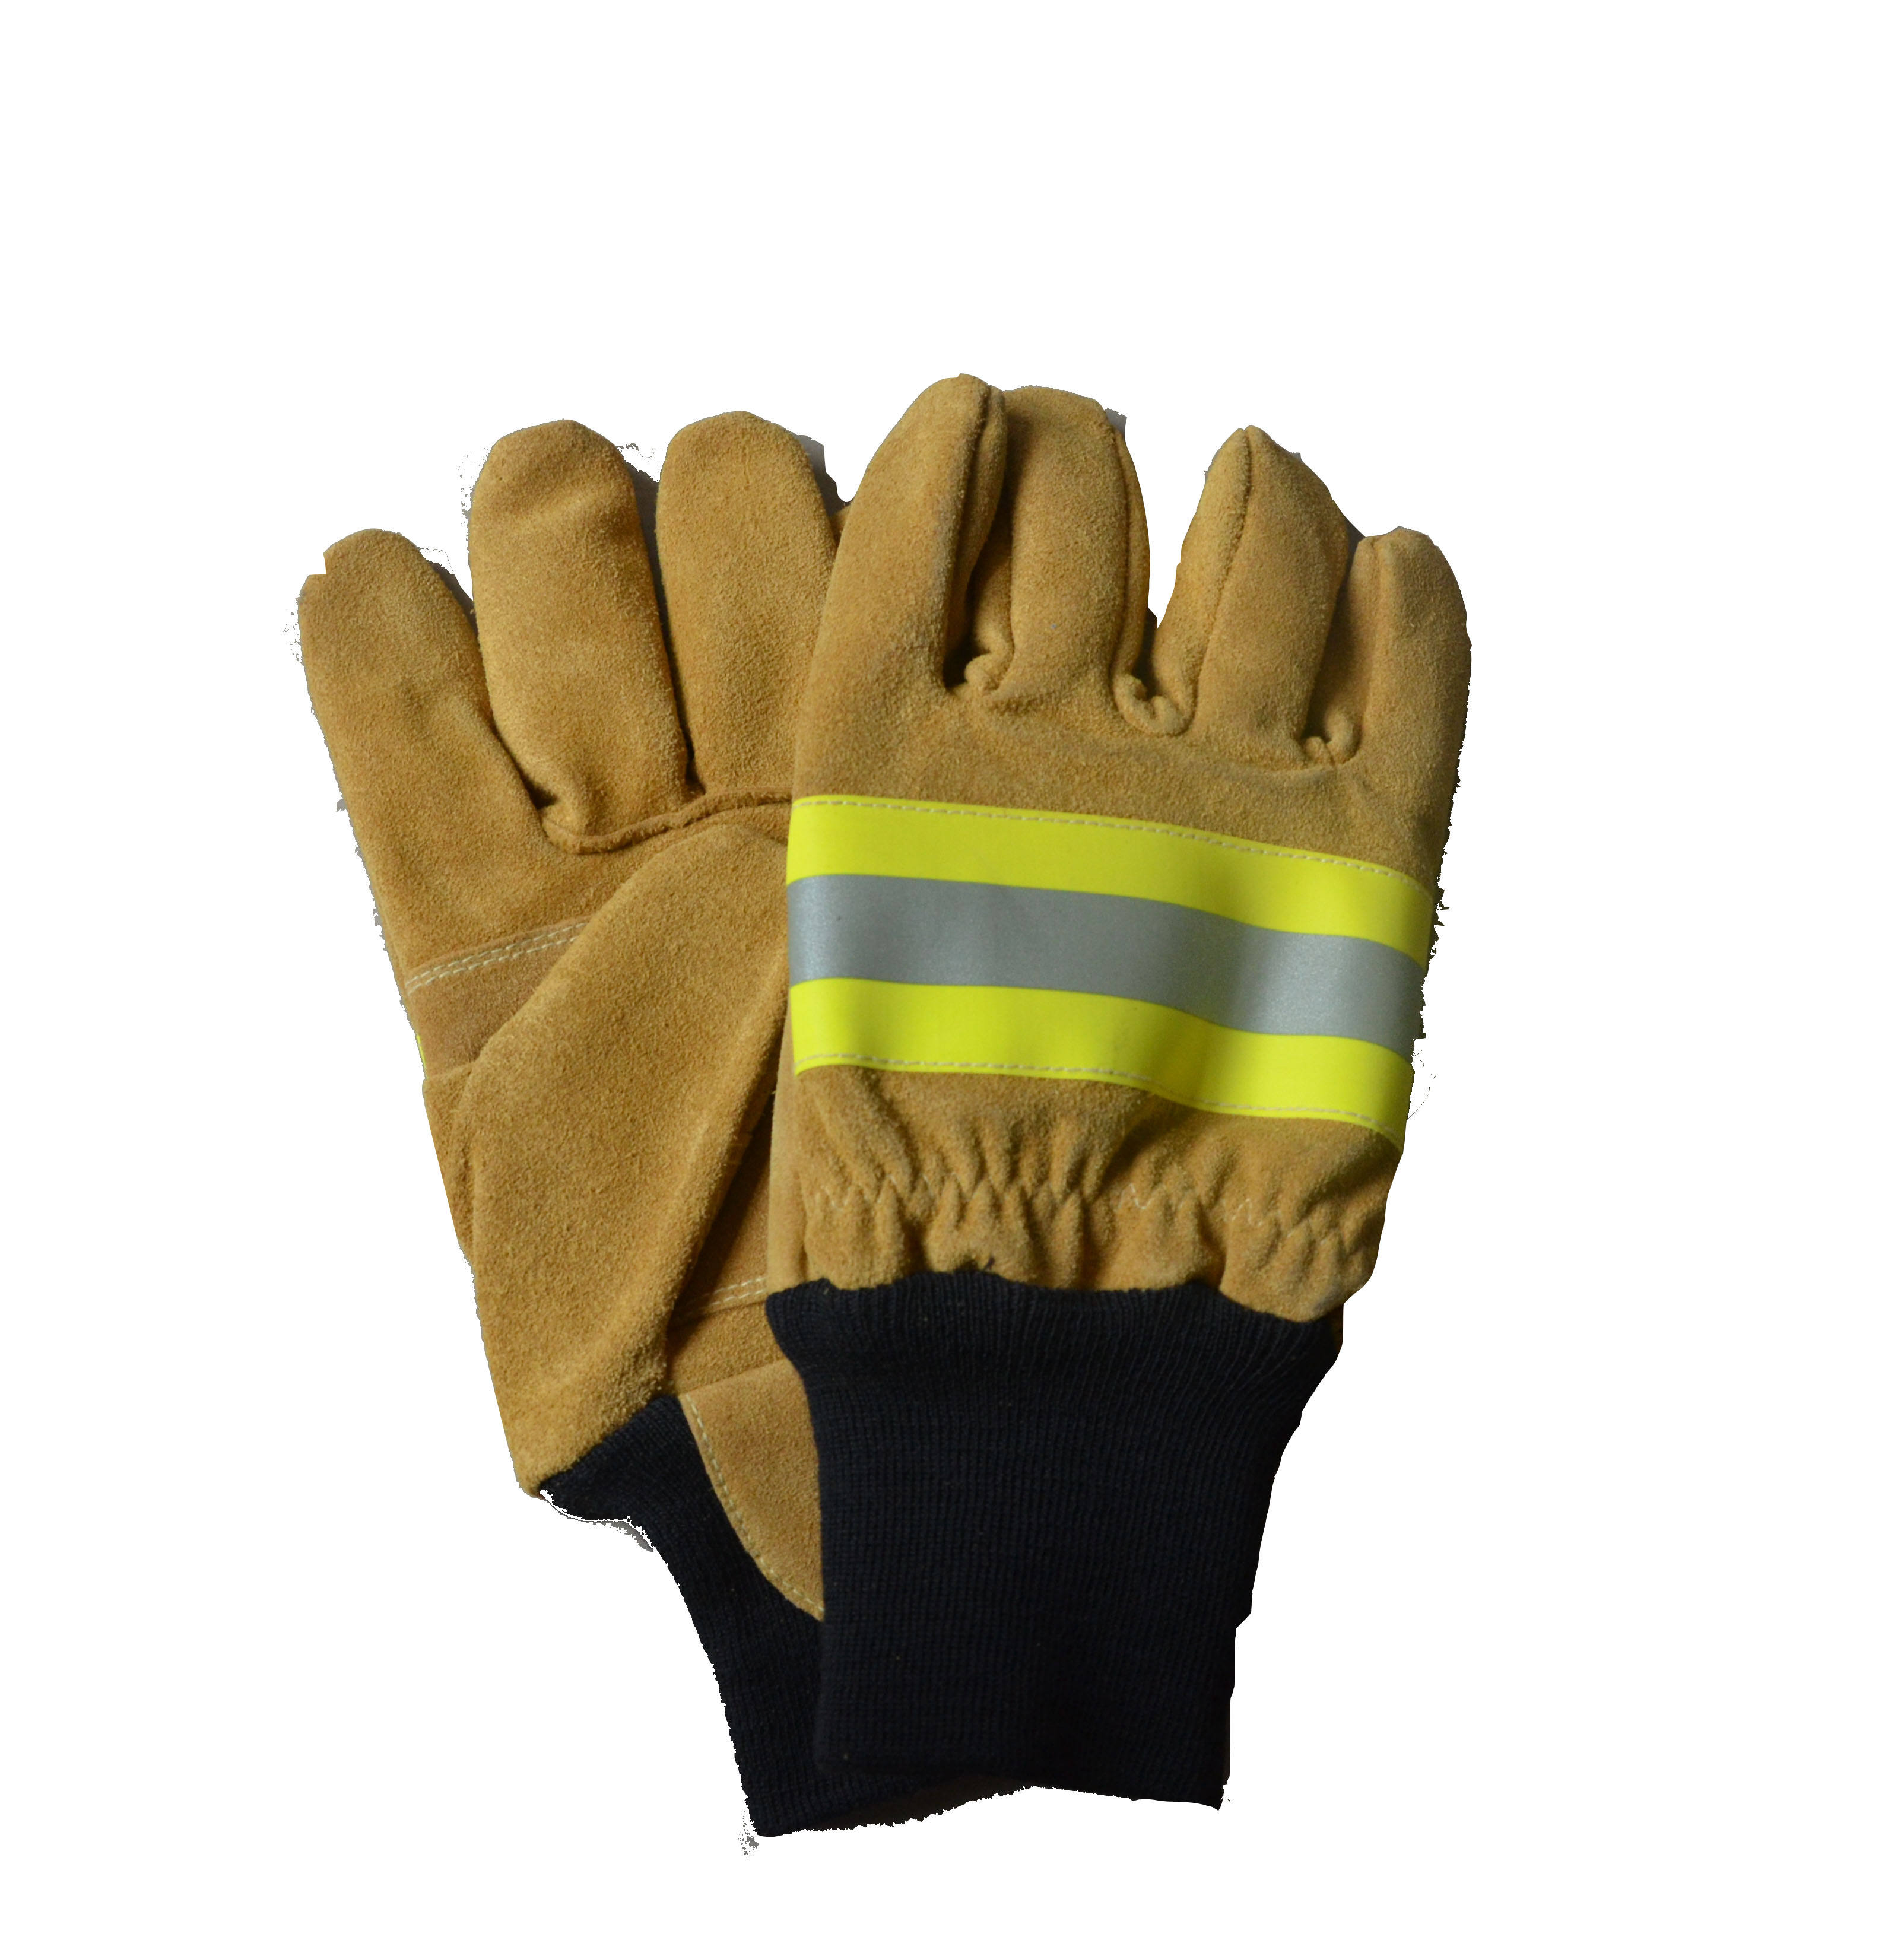 fire proof Firefighting firefighter Fire glove